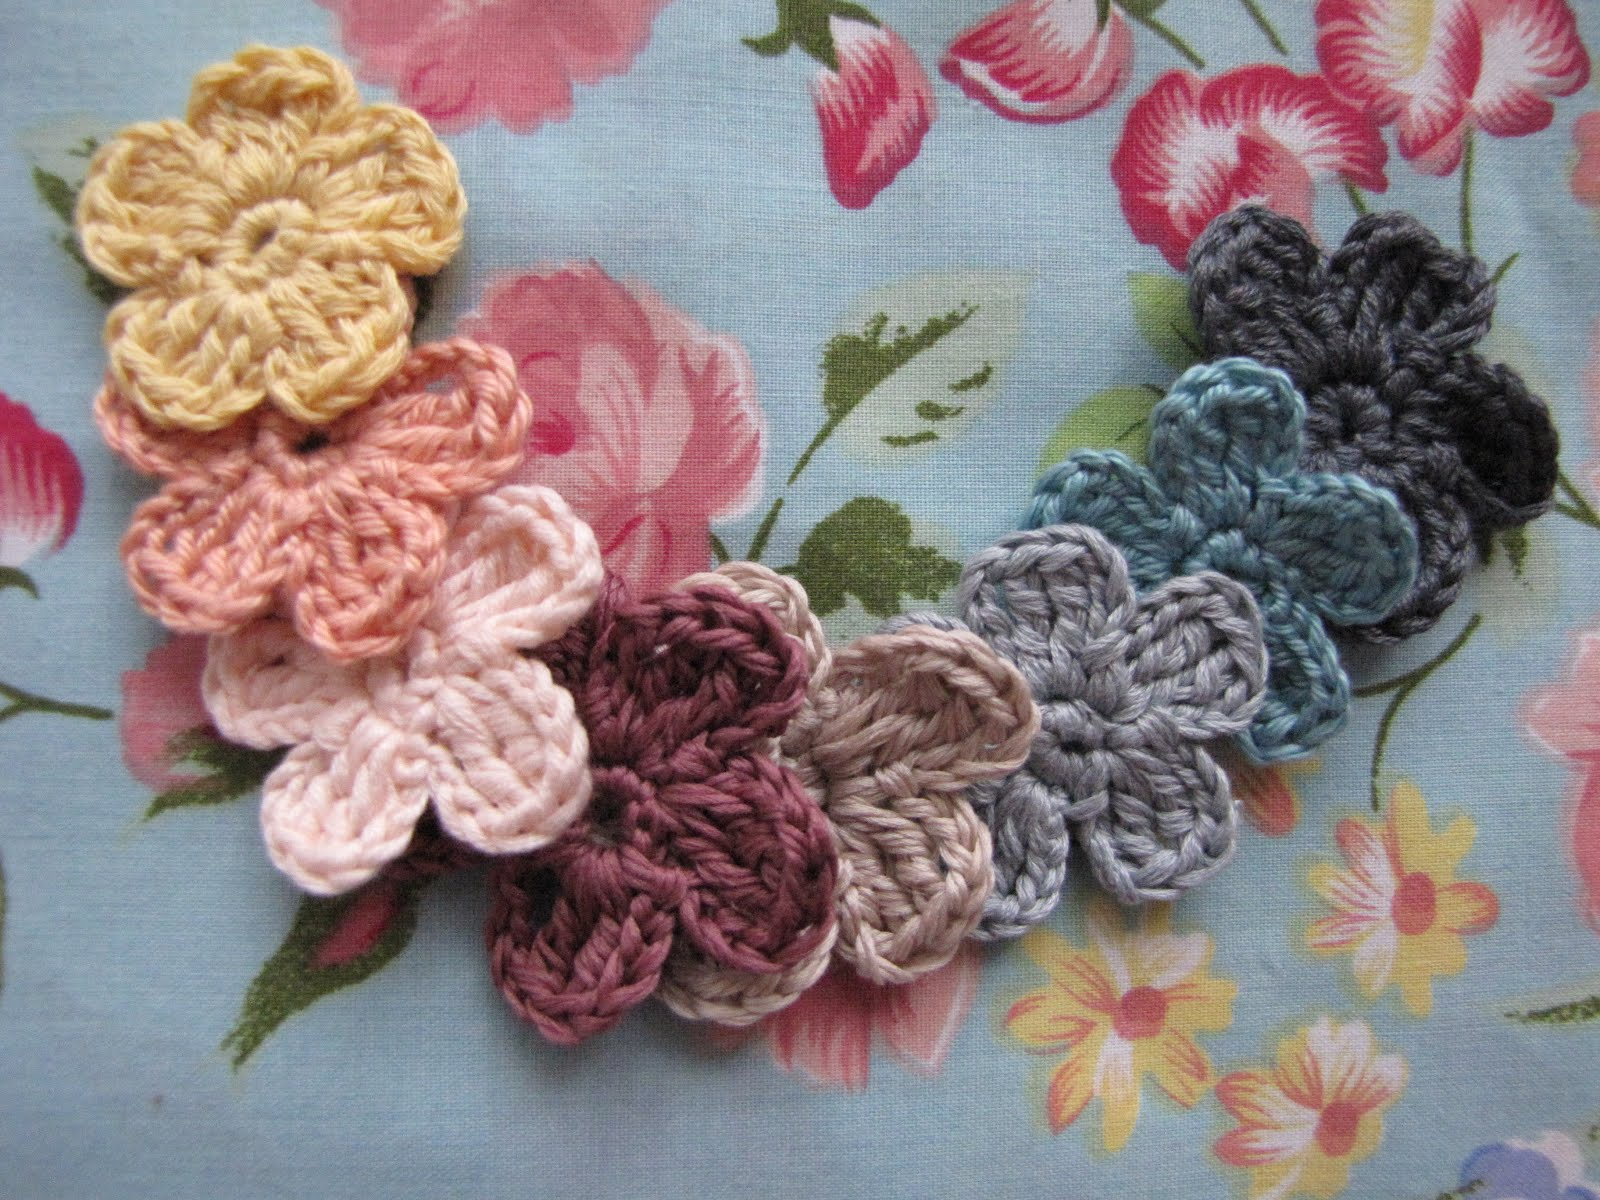 FREEBIES FOR CRAFTERS Crocheted Flowers